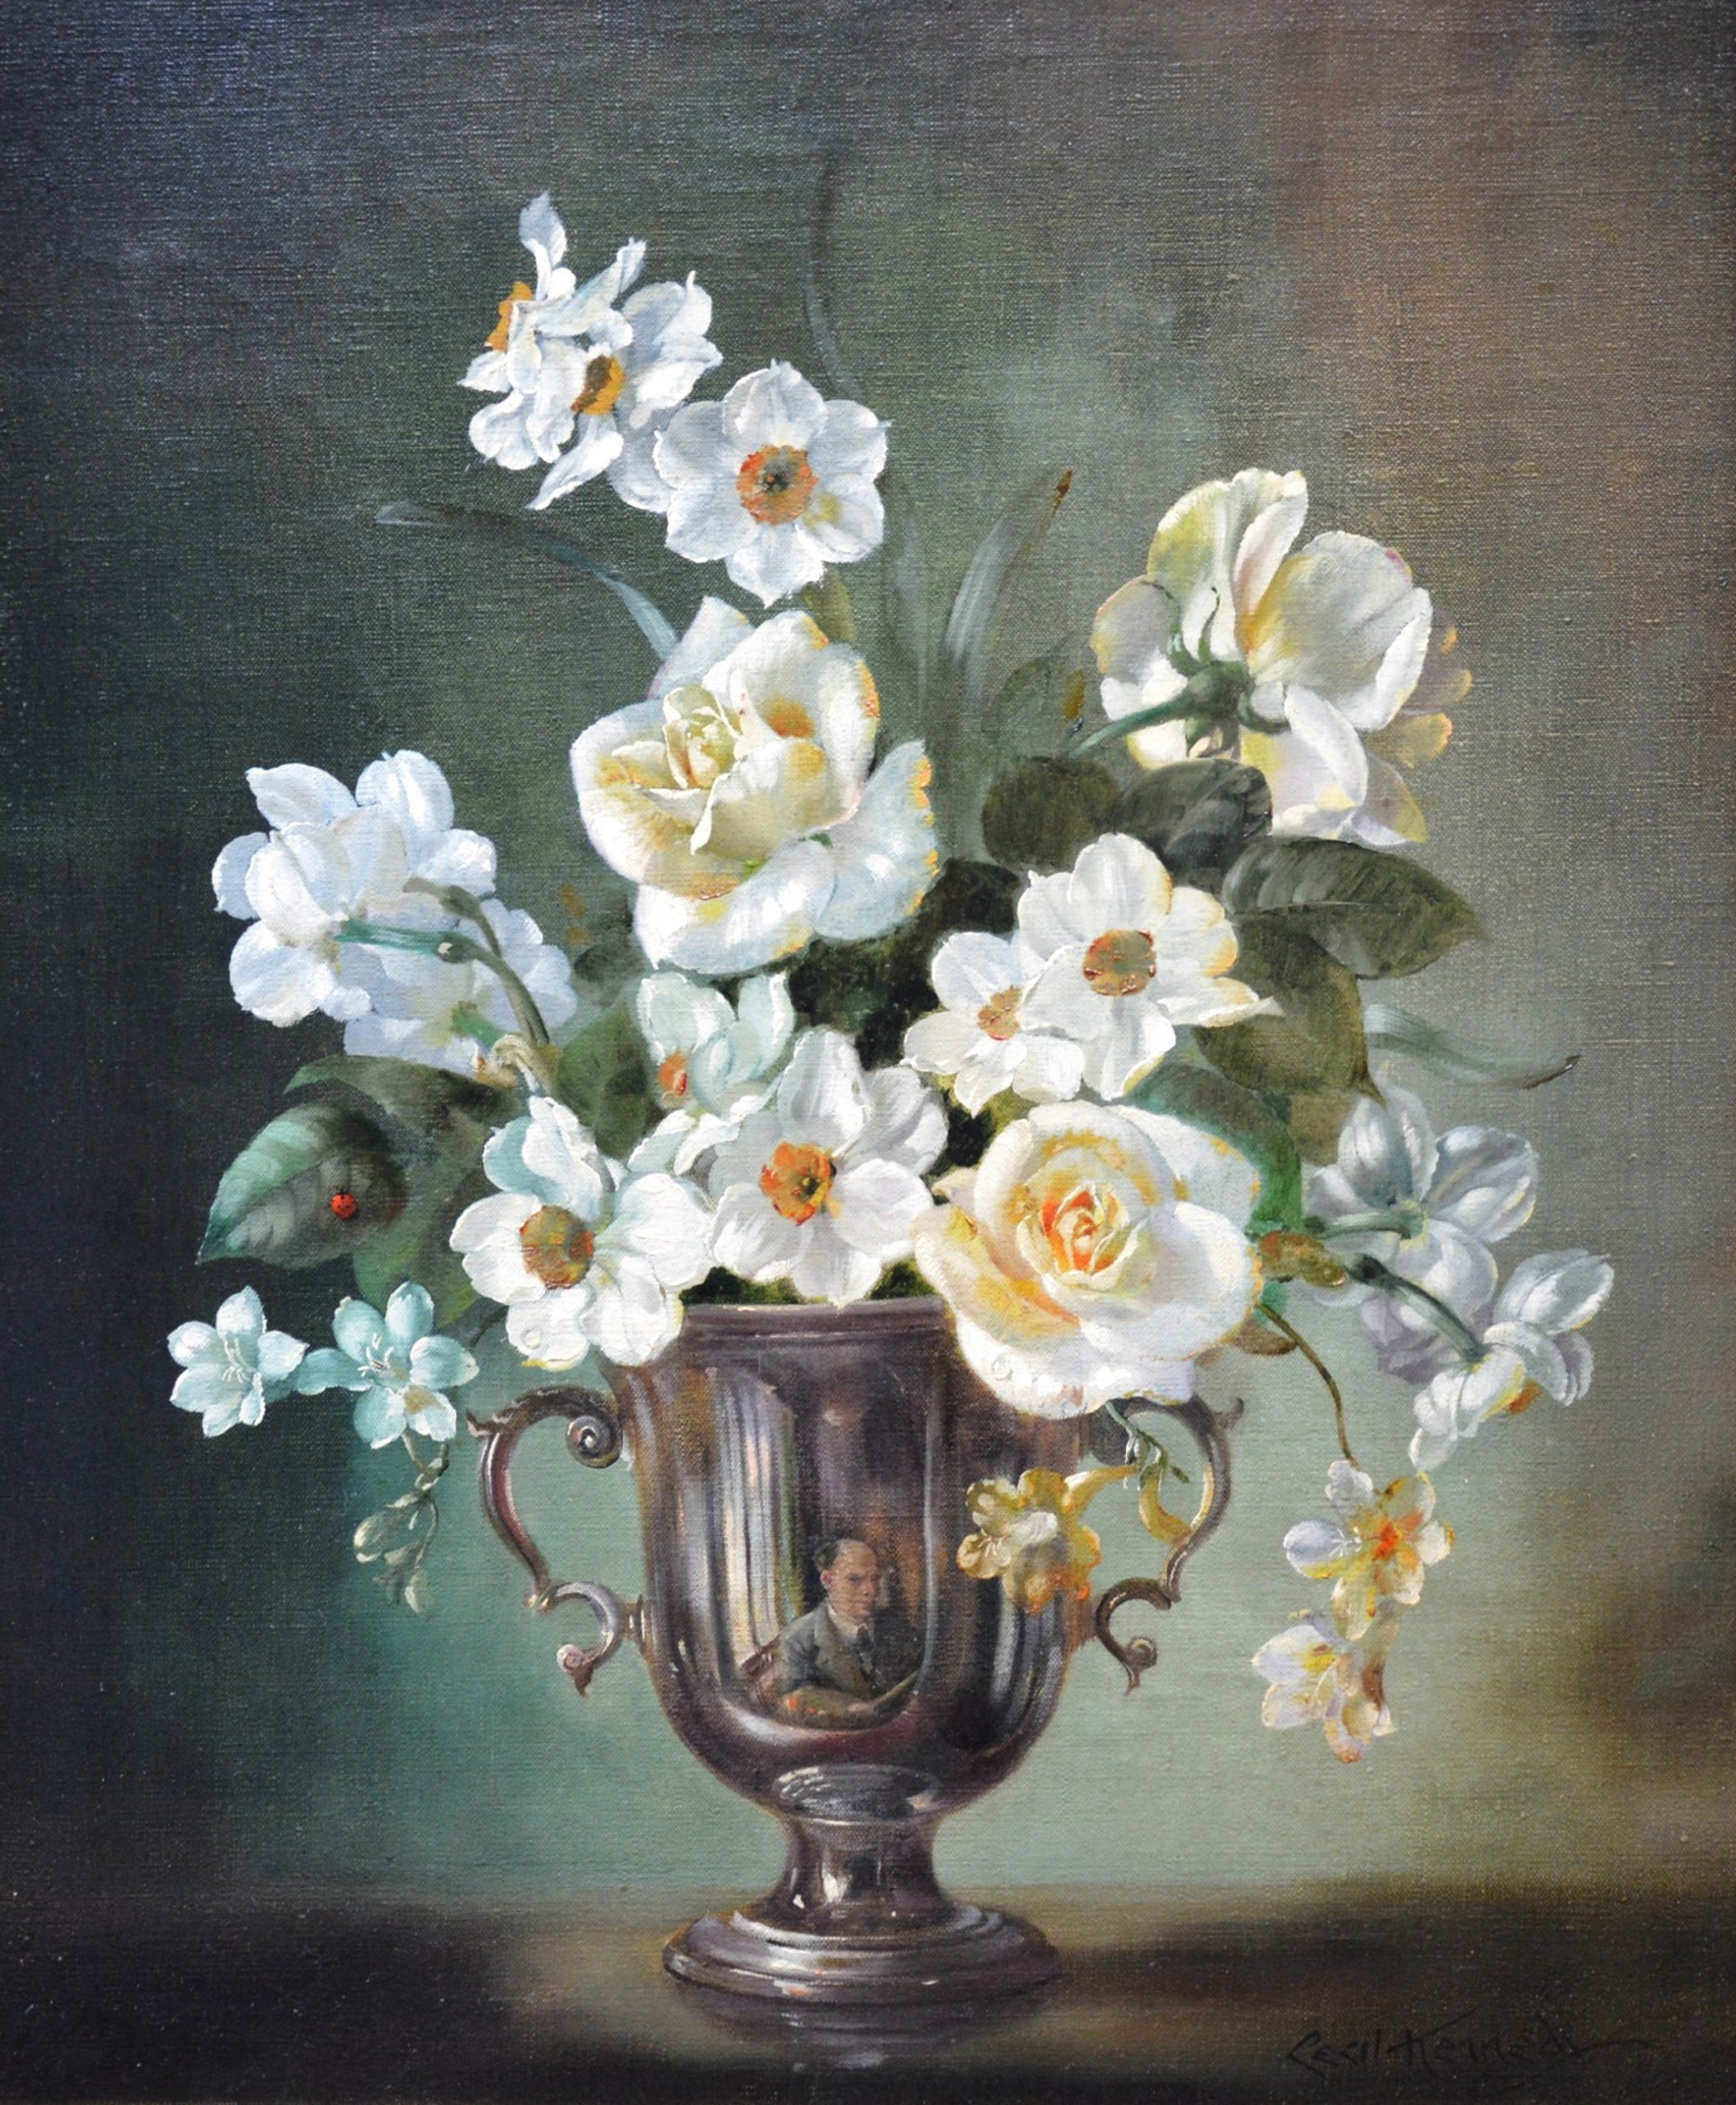 Spring - Floral Still Life of White Daffodils and Roses Image